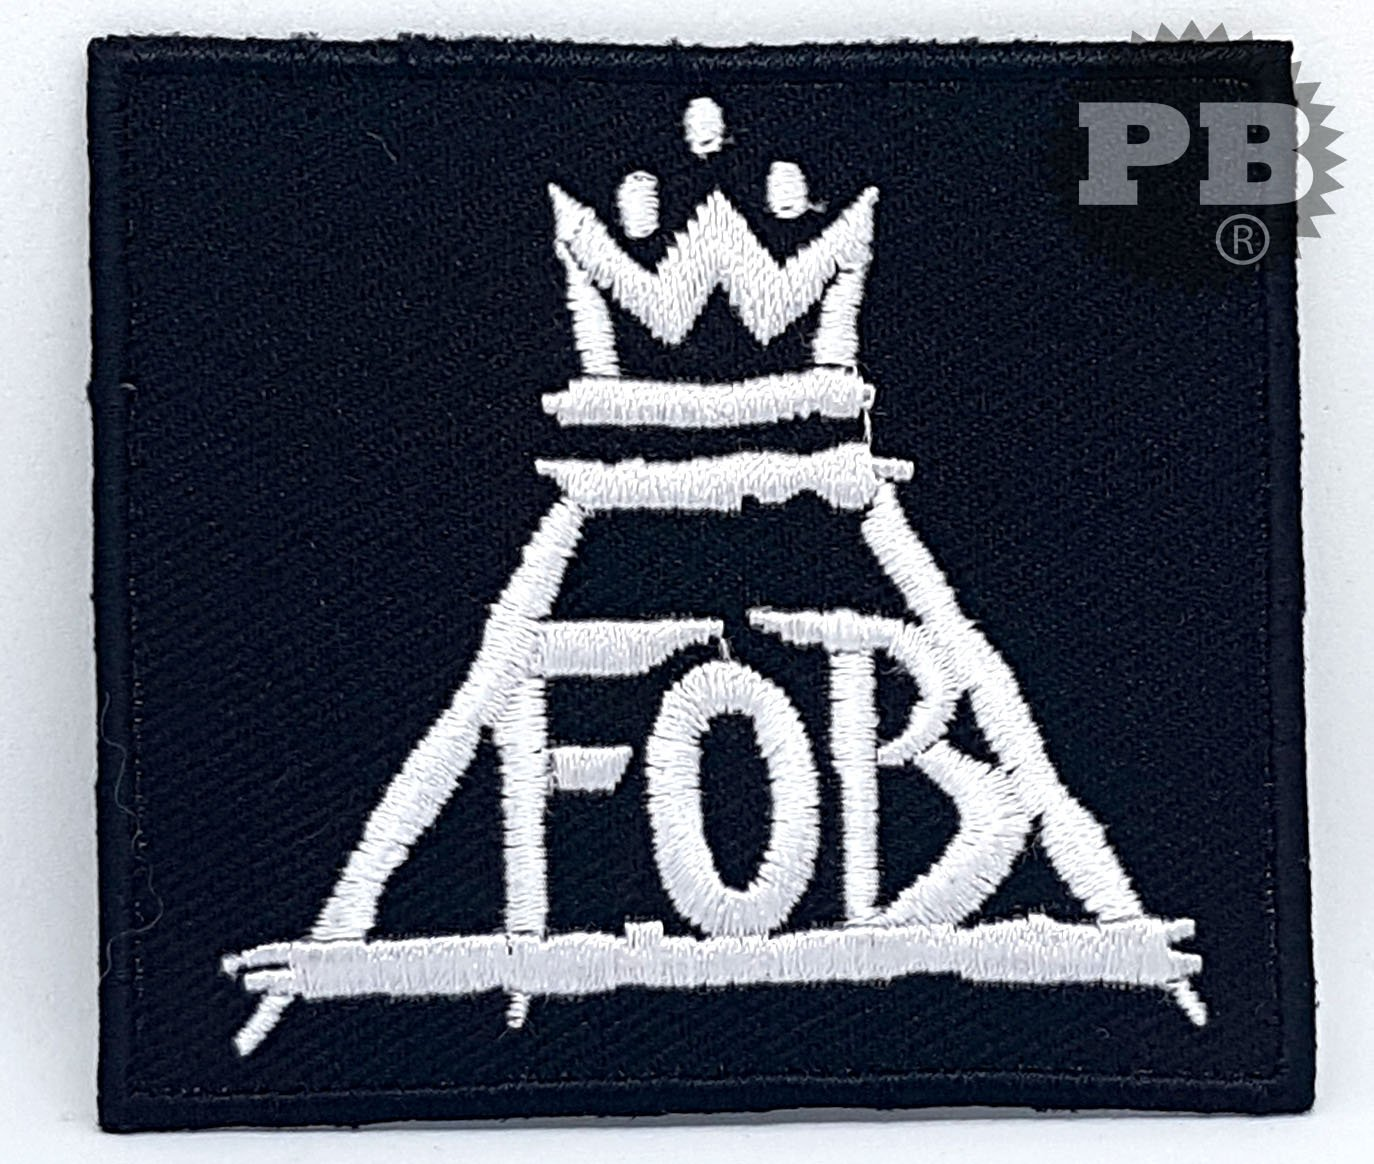 #2163 FALL OUT BOY PATRICK STUMP Iron/sew on Embroidered Patch Embrologos